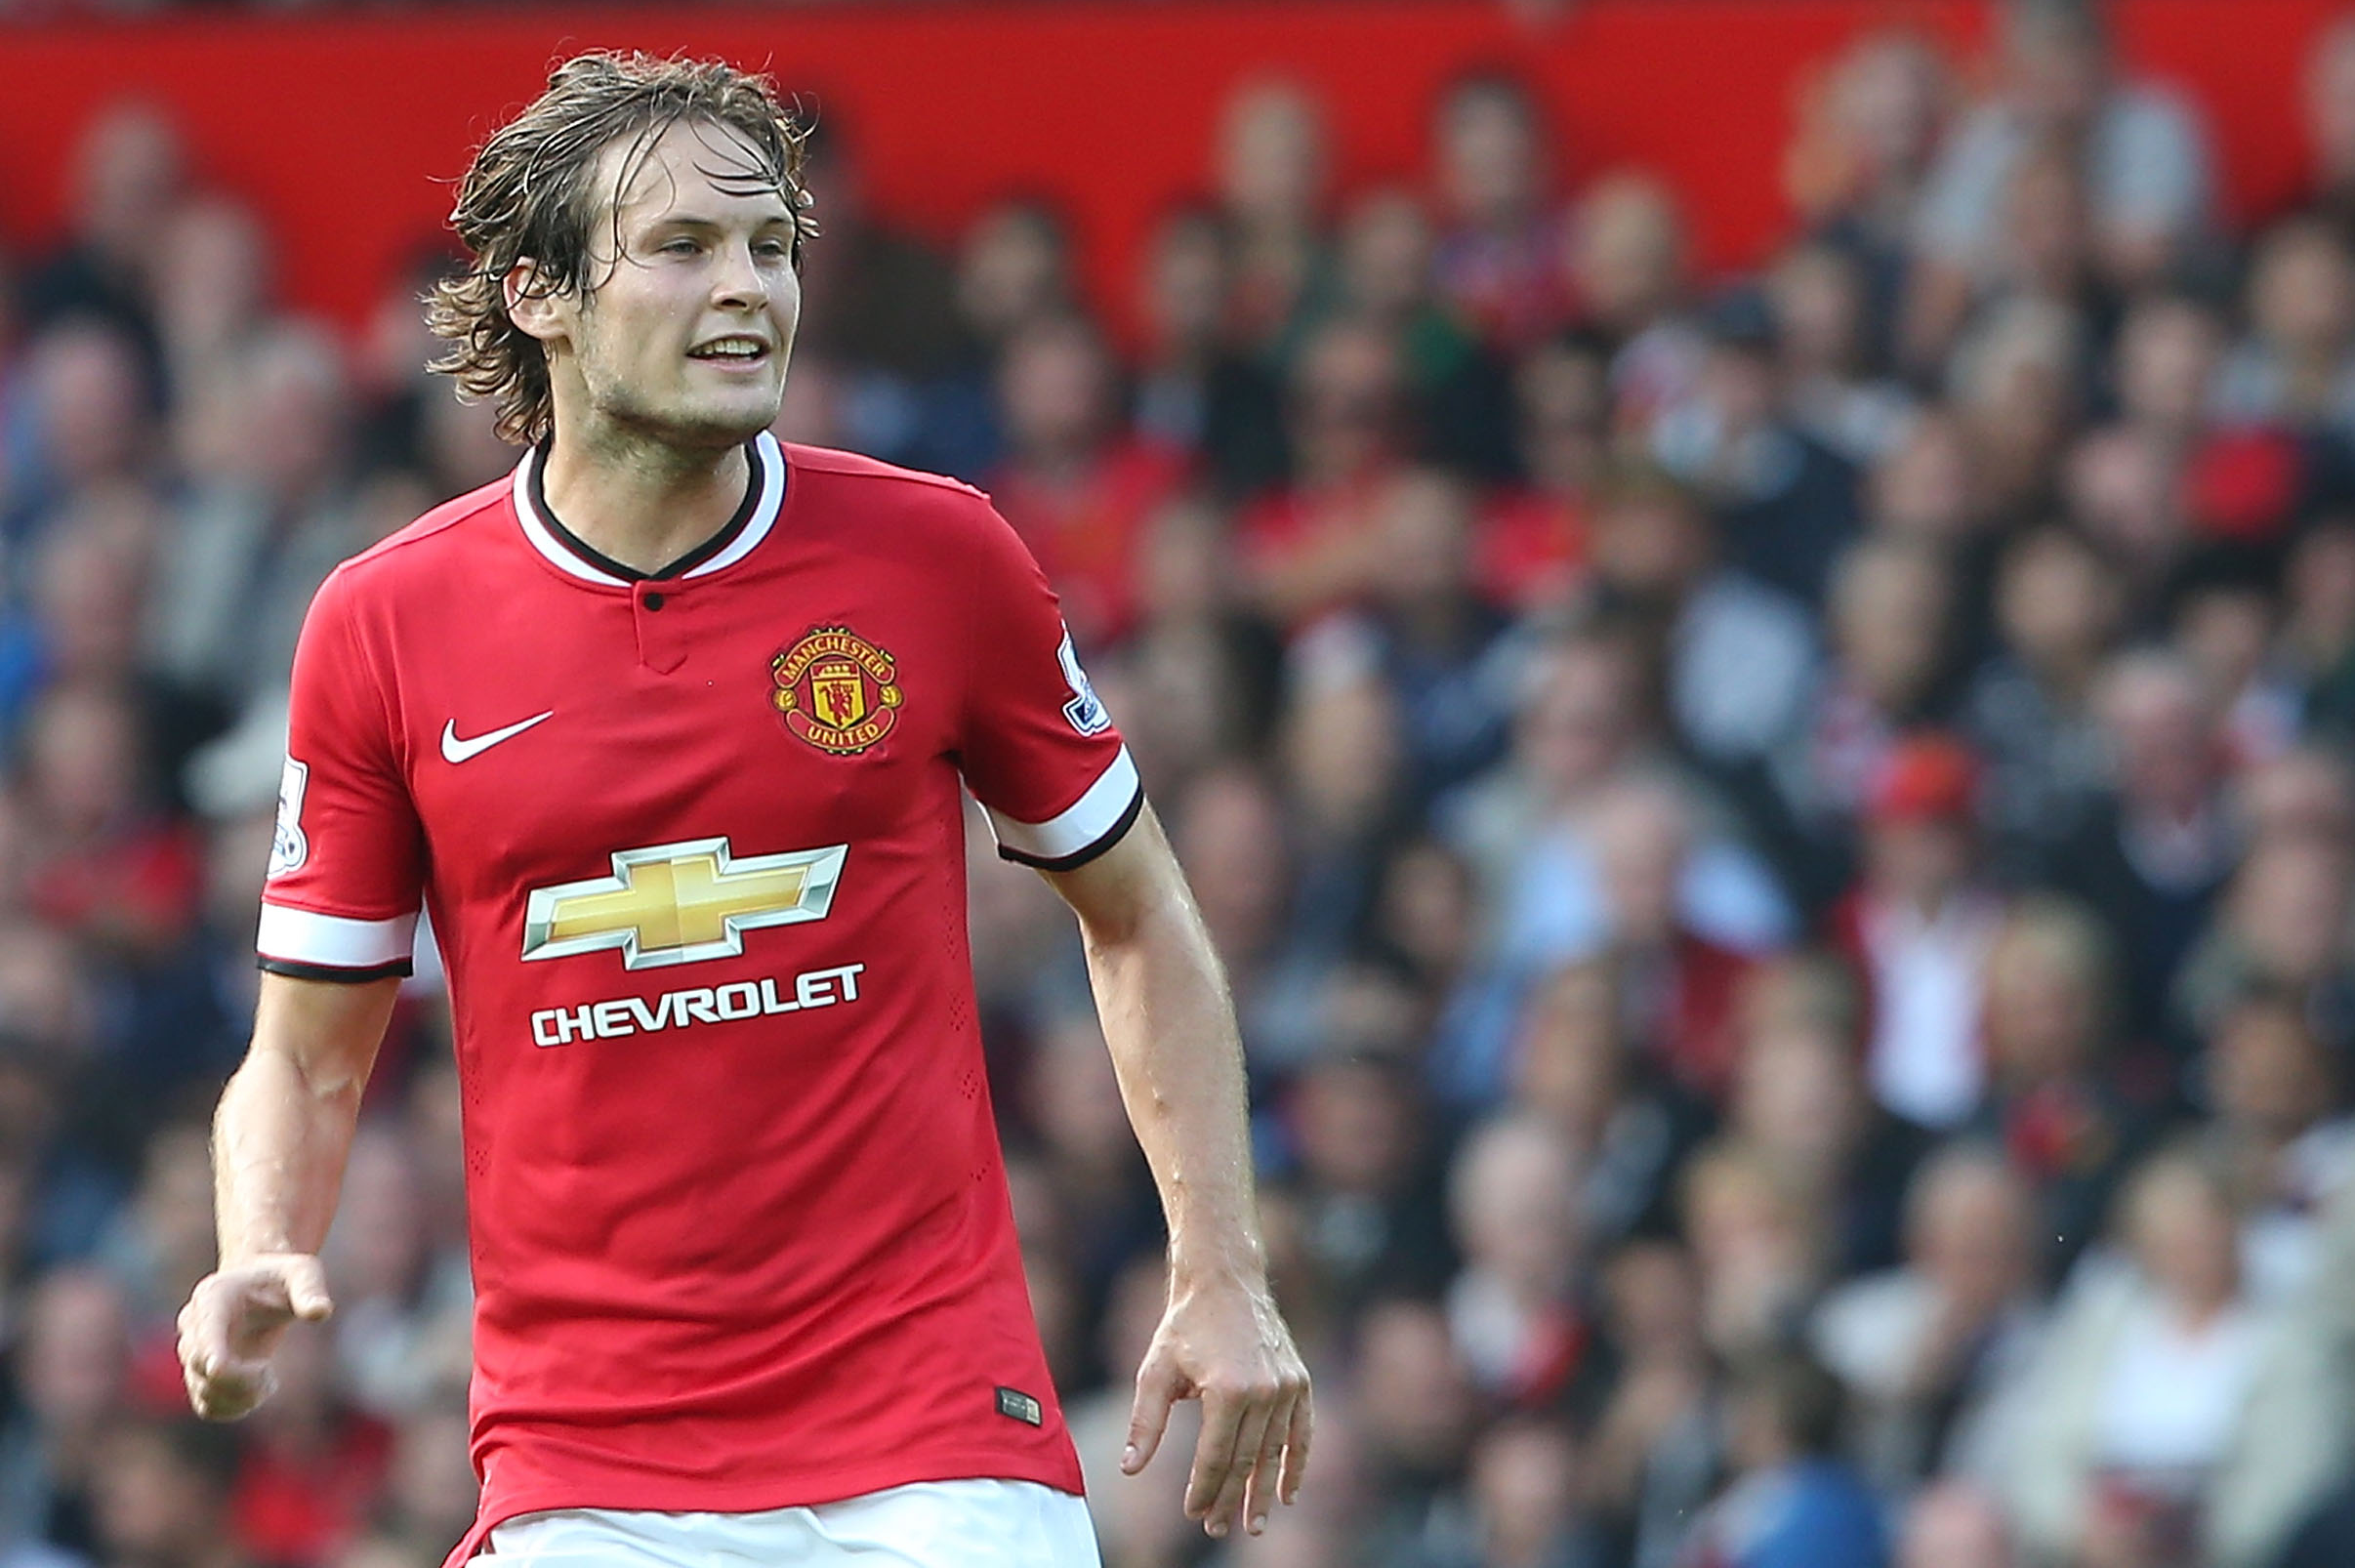 Daley Blind: reading between the lines